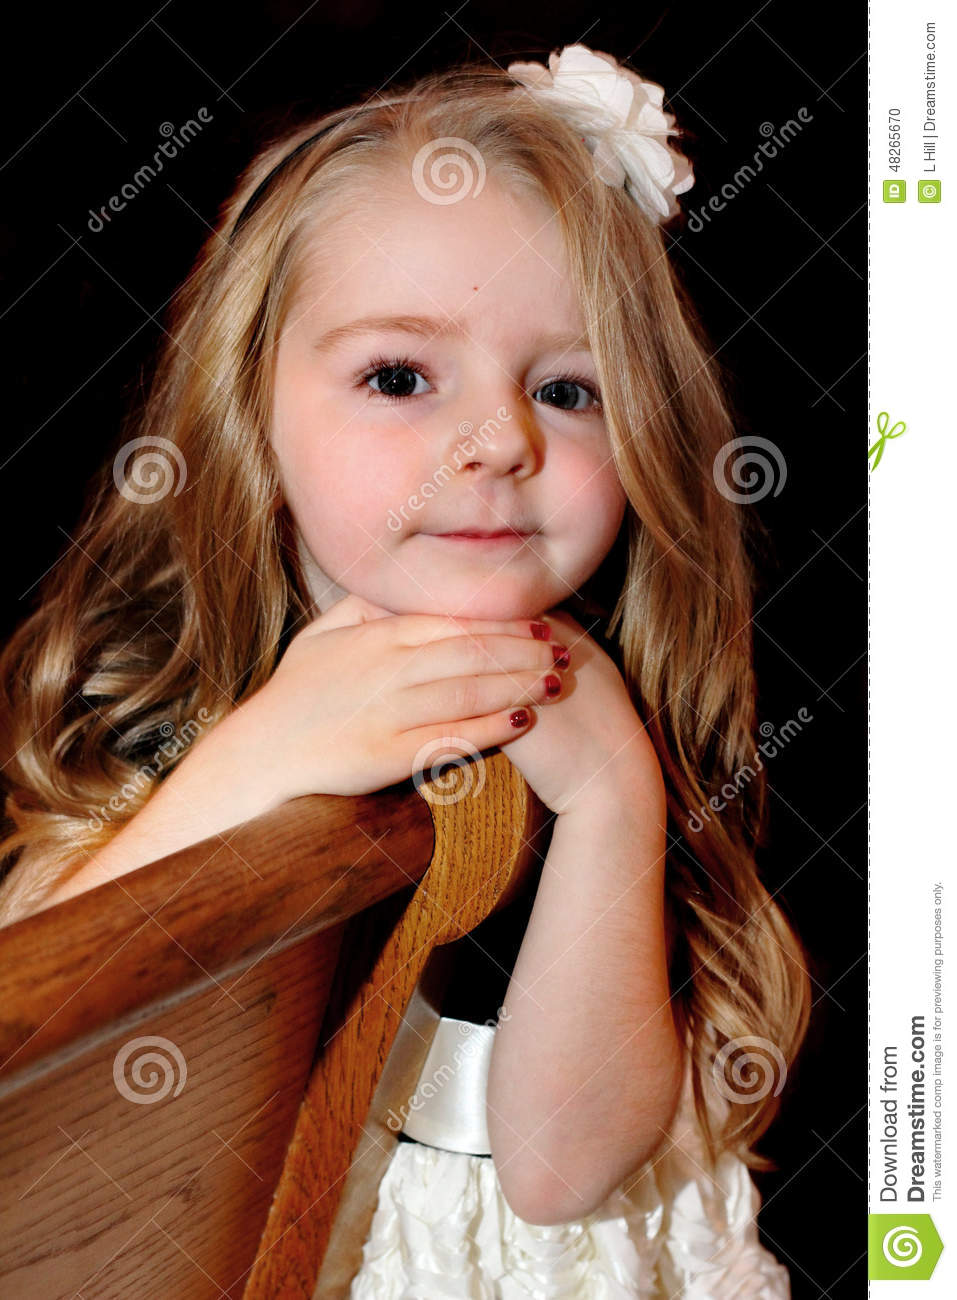 Pretty Little Girl With Long Hair Stock Photo Image Of Adorable